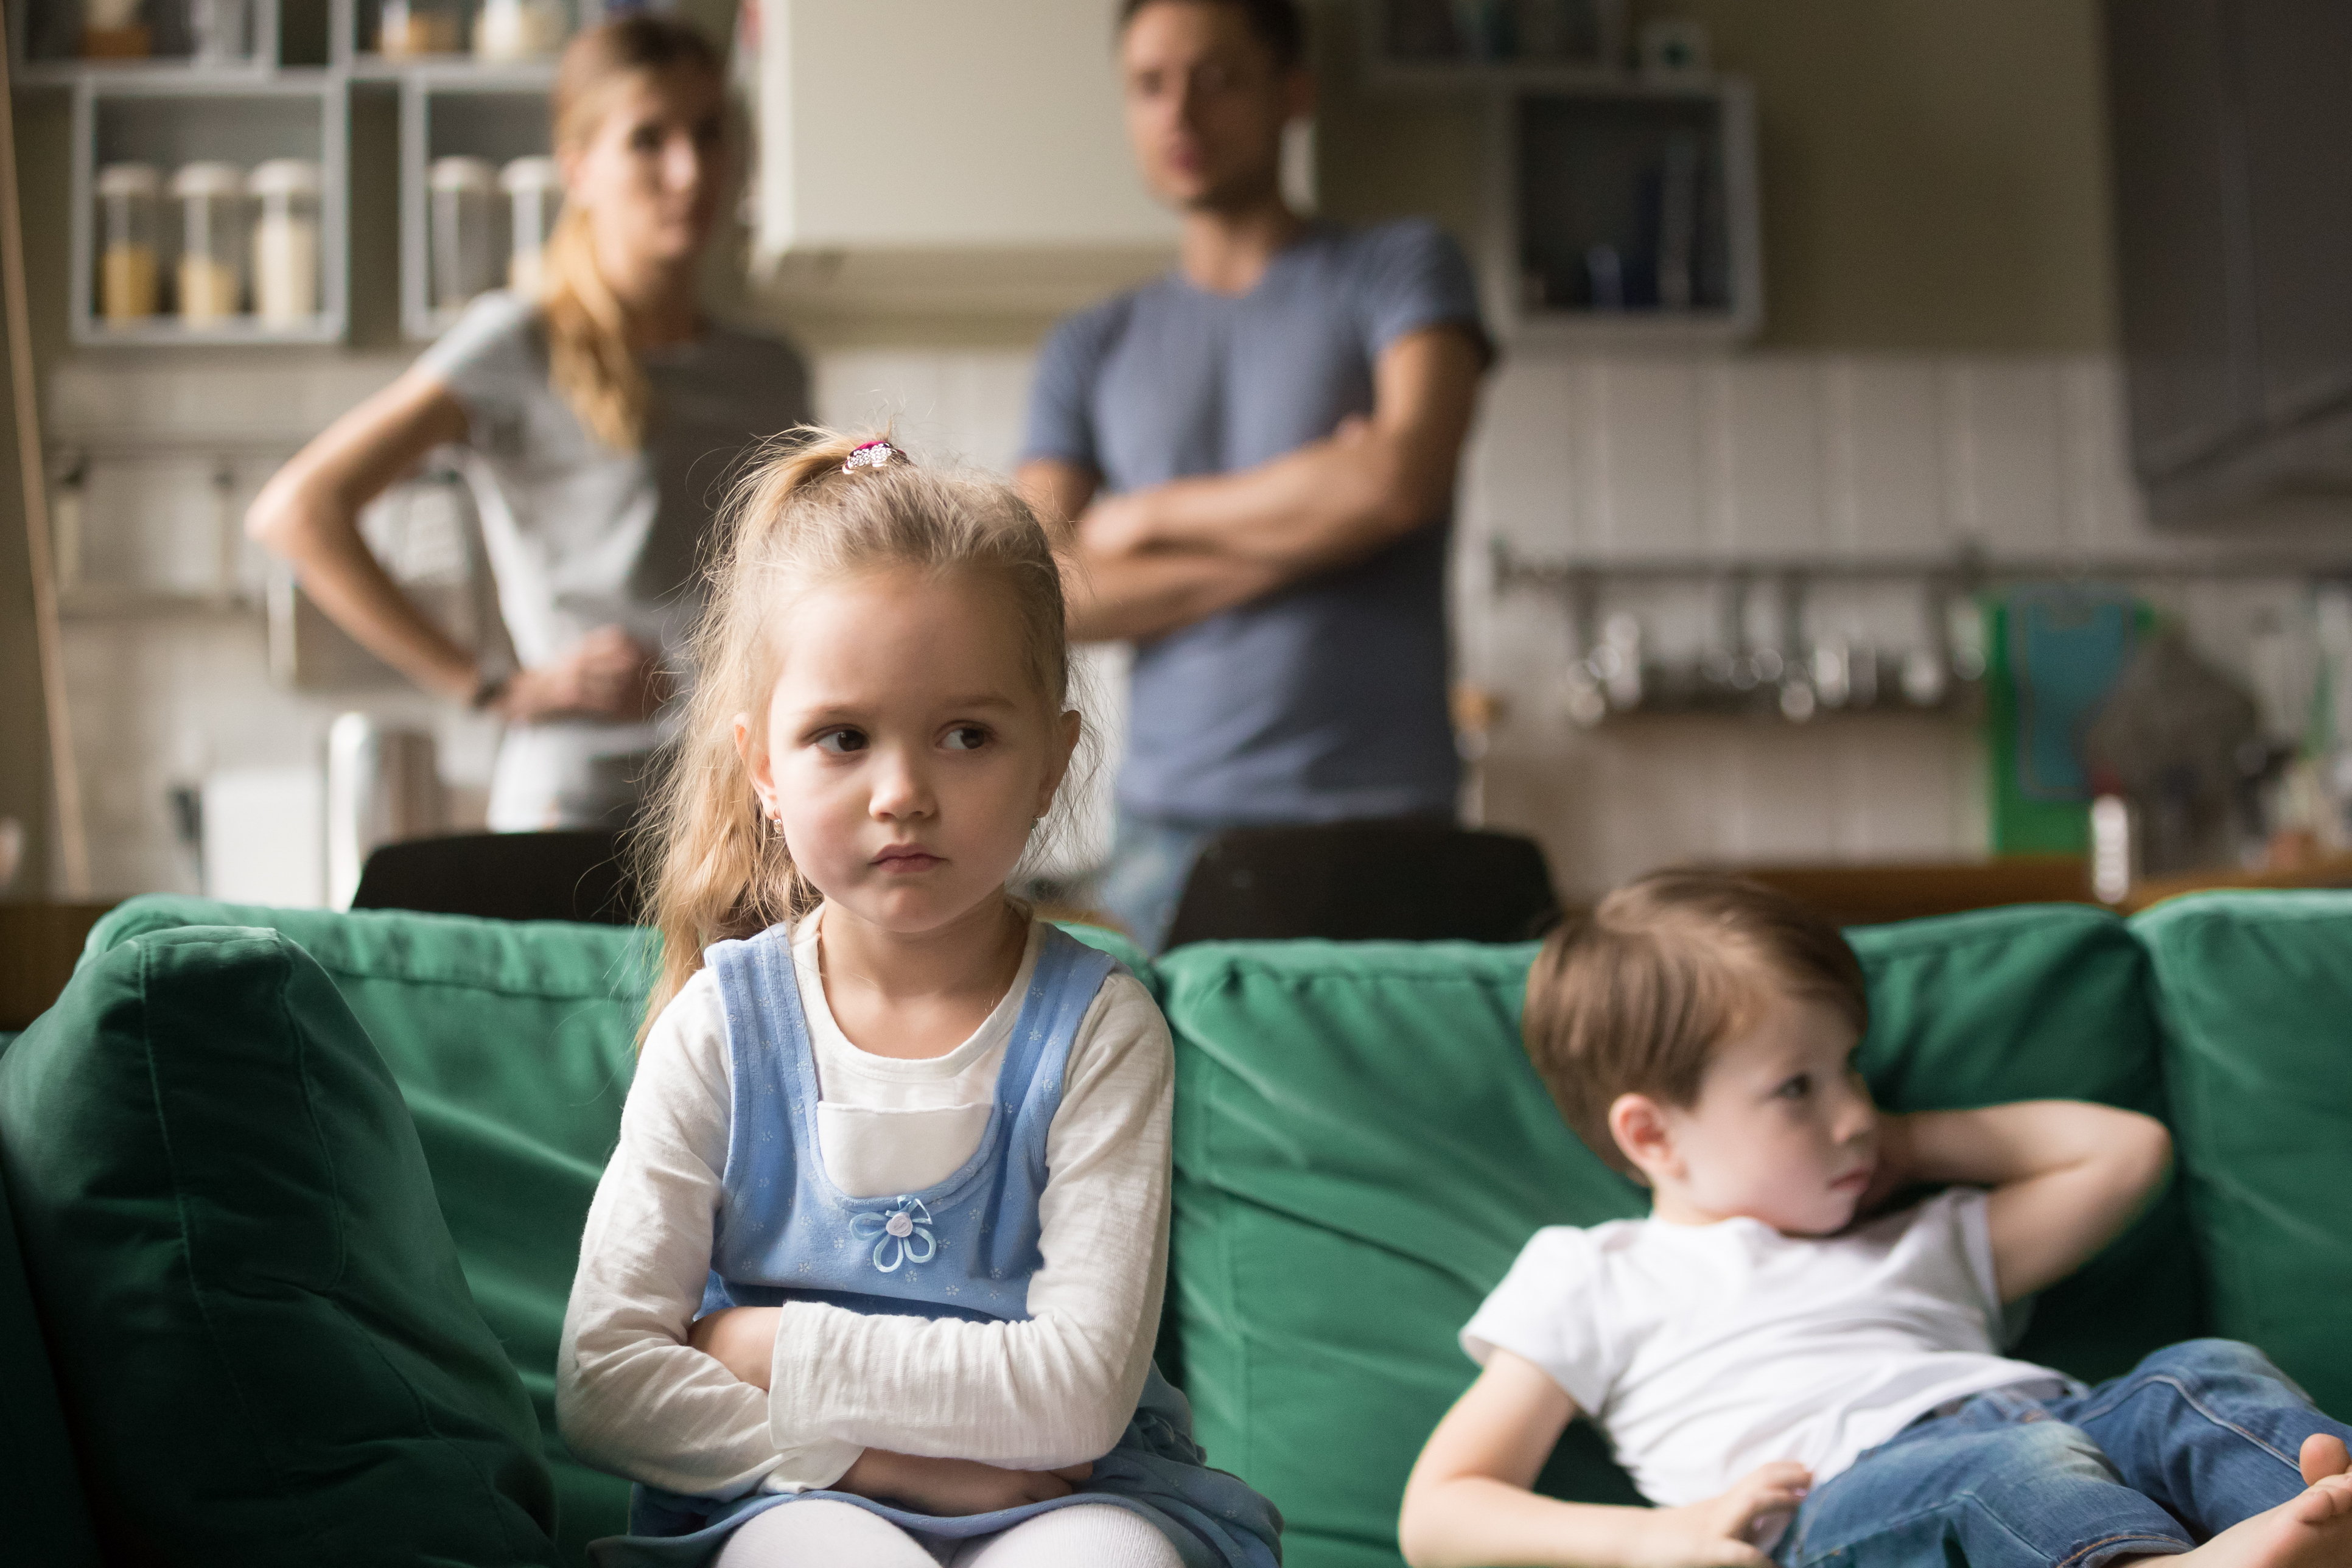 How to effectively manage behavioural issues in your children